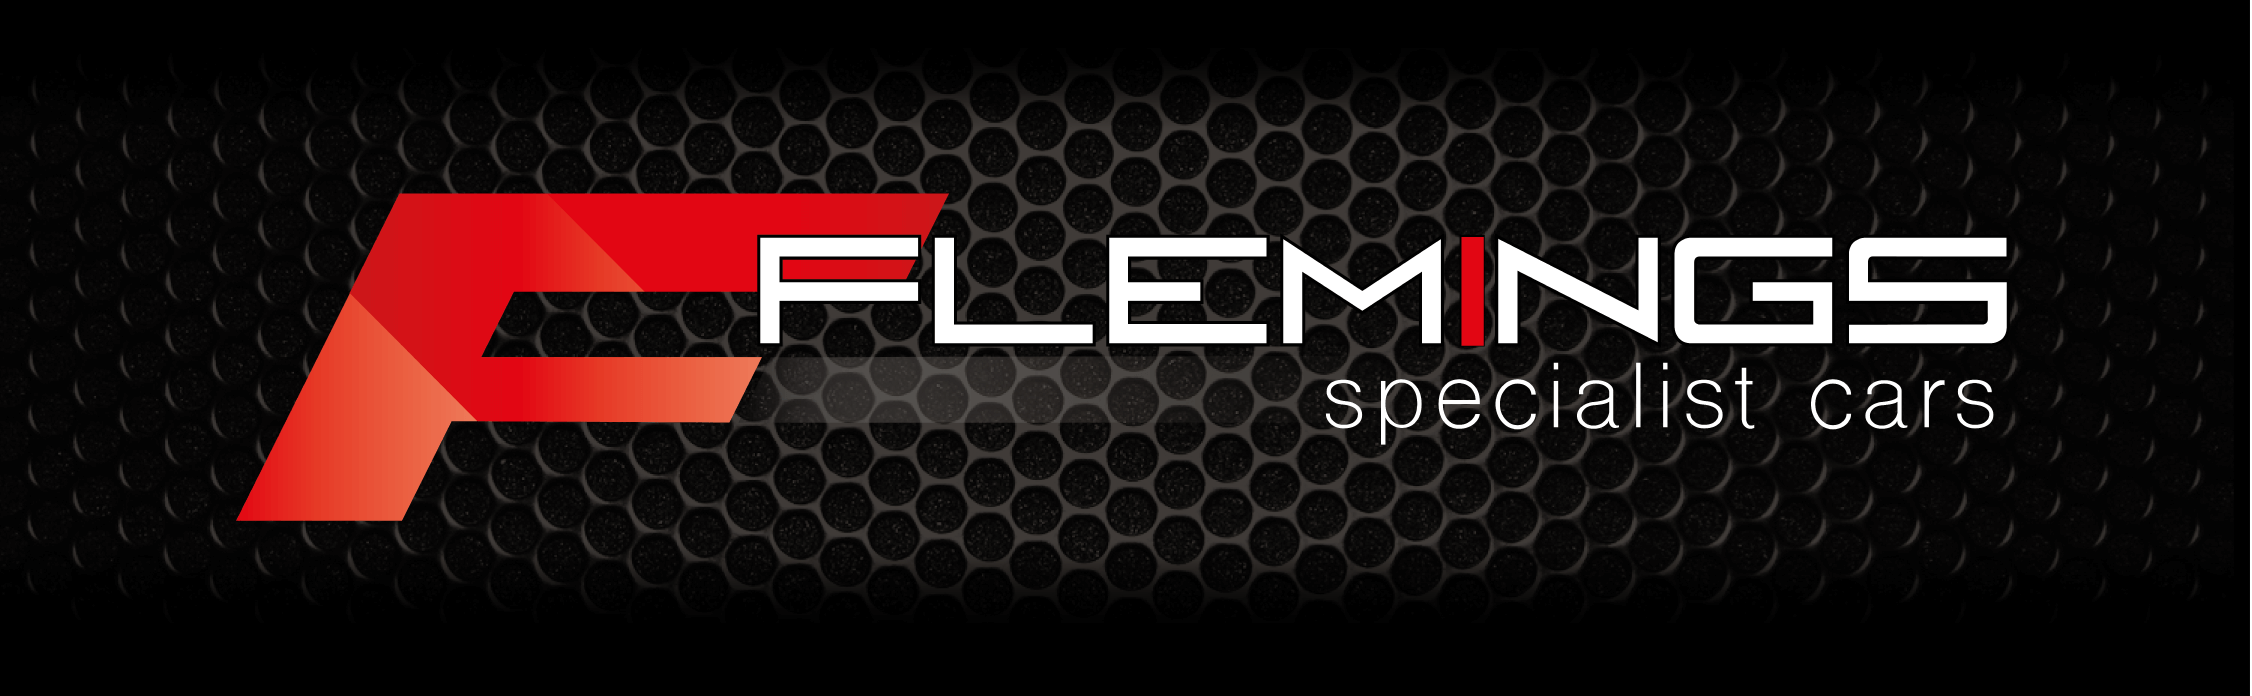 Flemings Specialist Cars